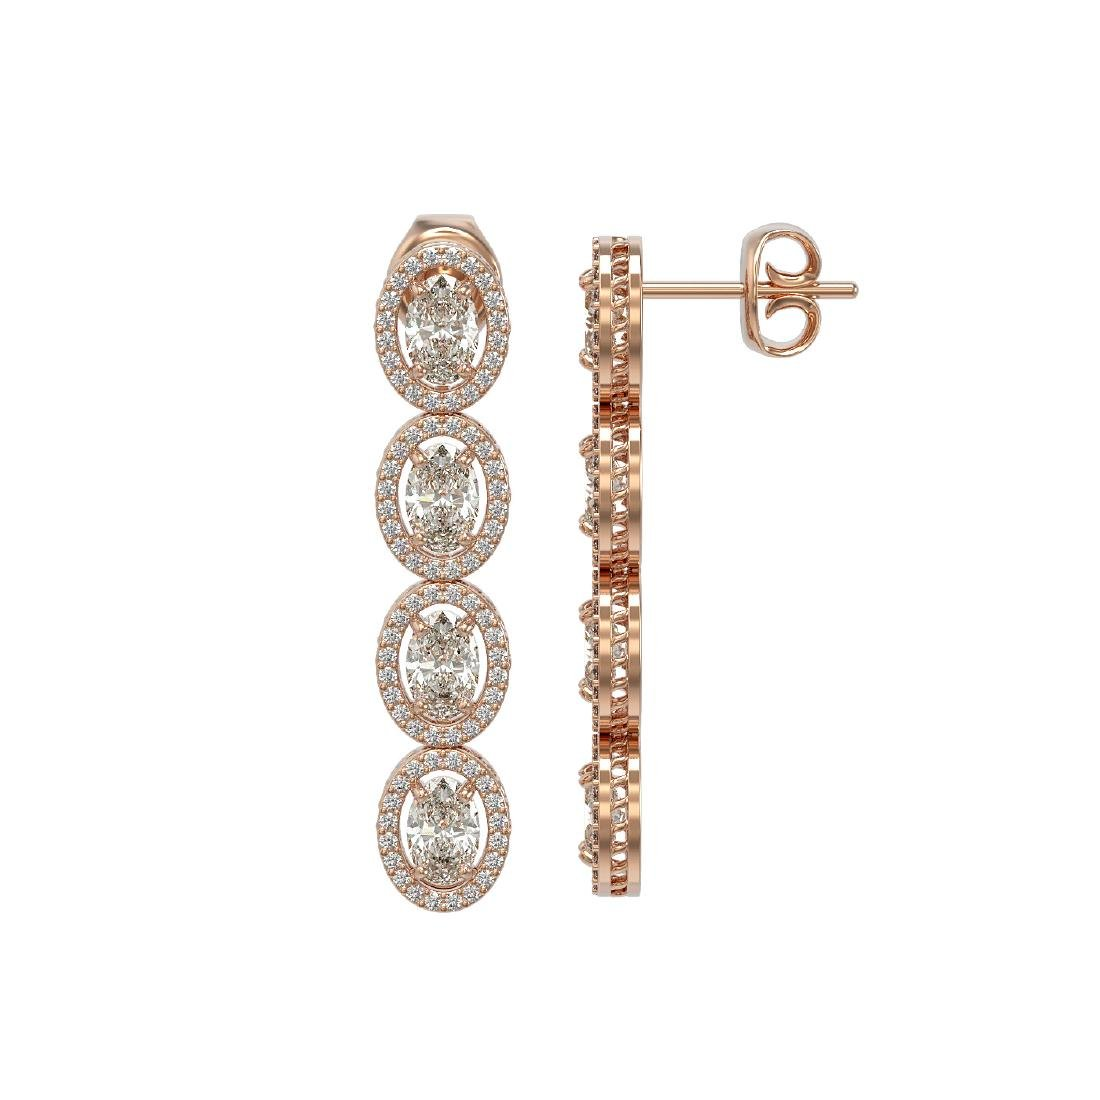 6.08 CTW Oval Diamond Designer Earrings 18K Rose Gold - 2